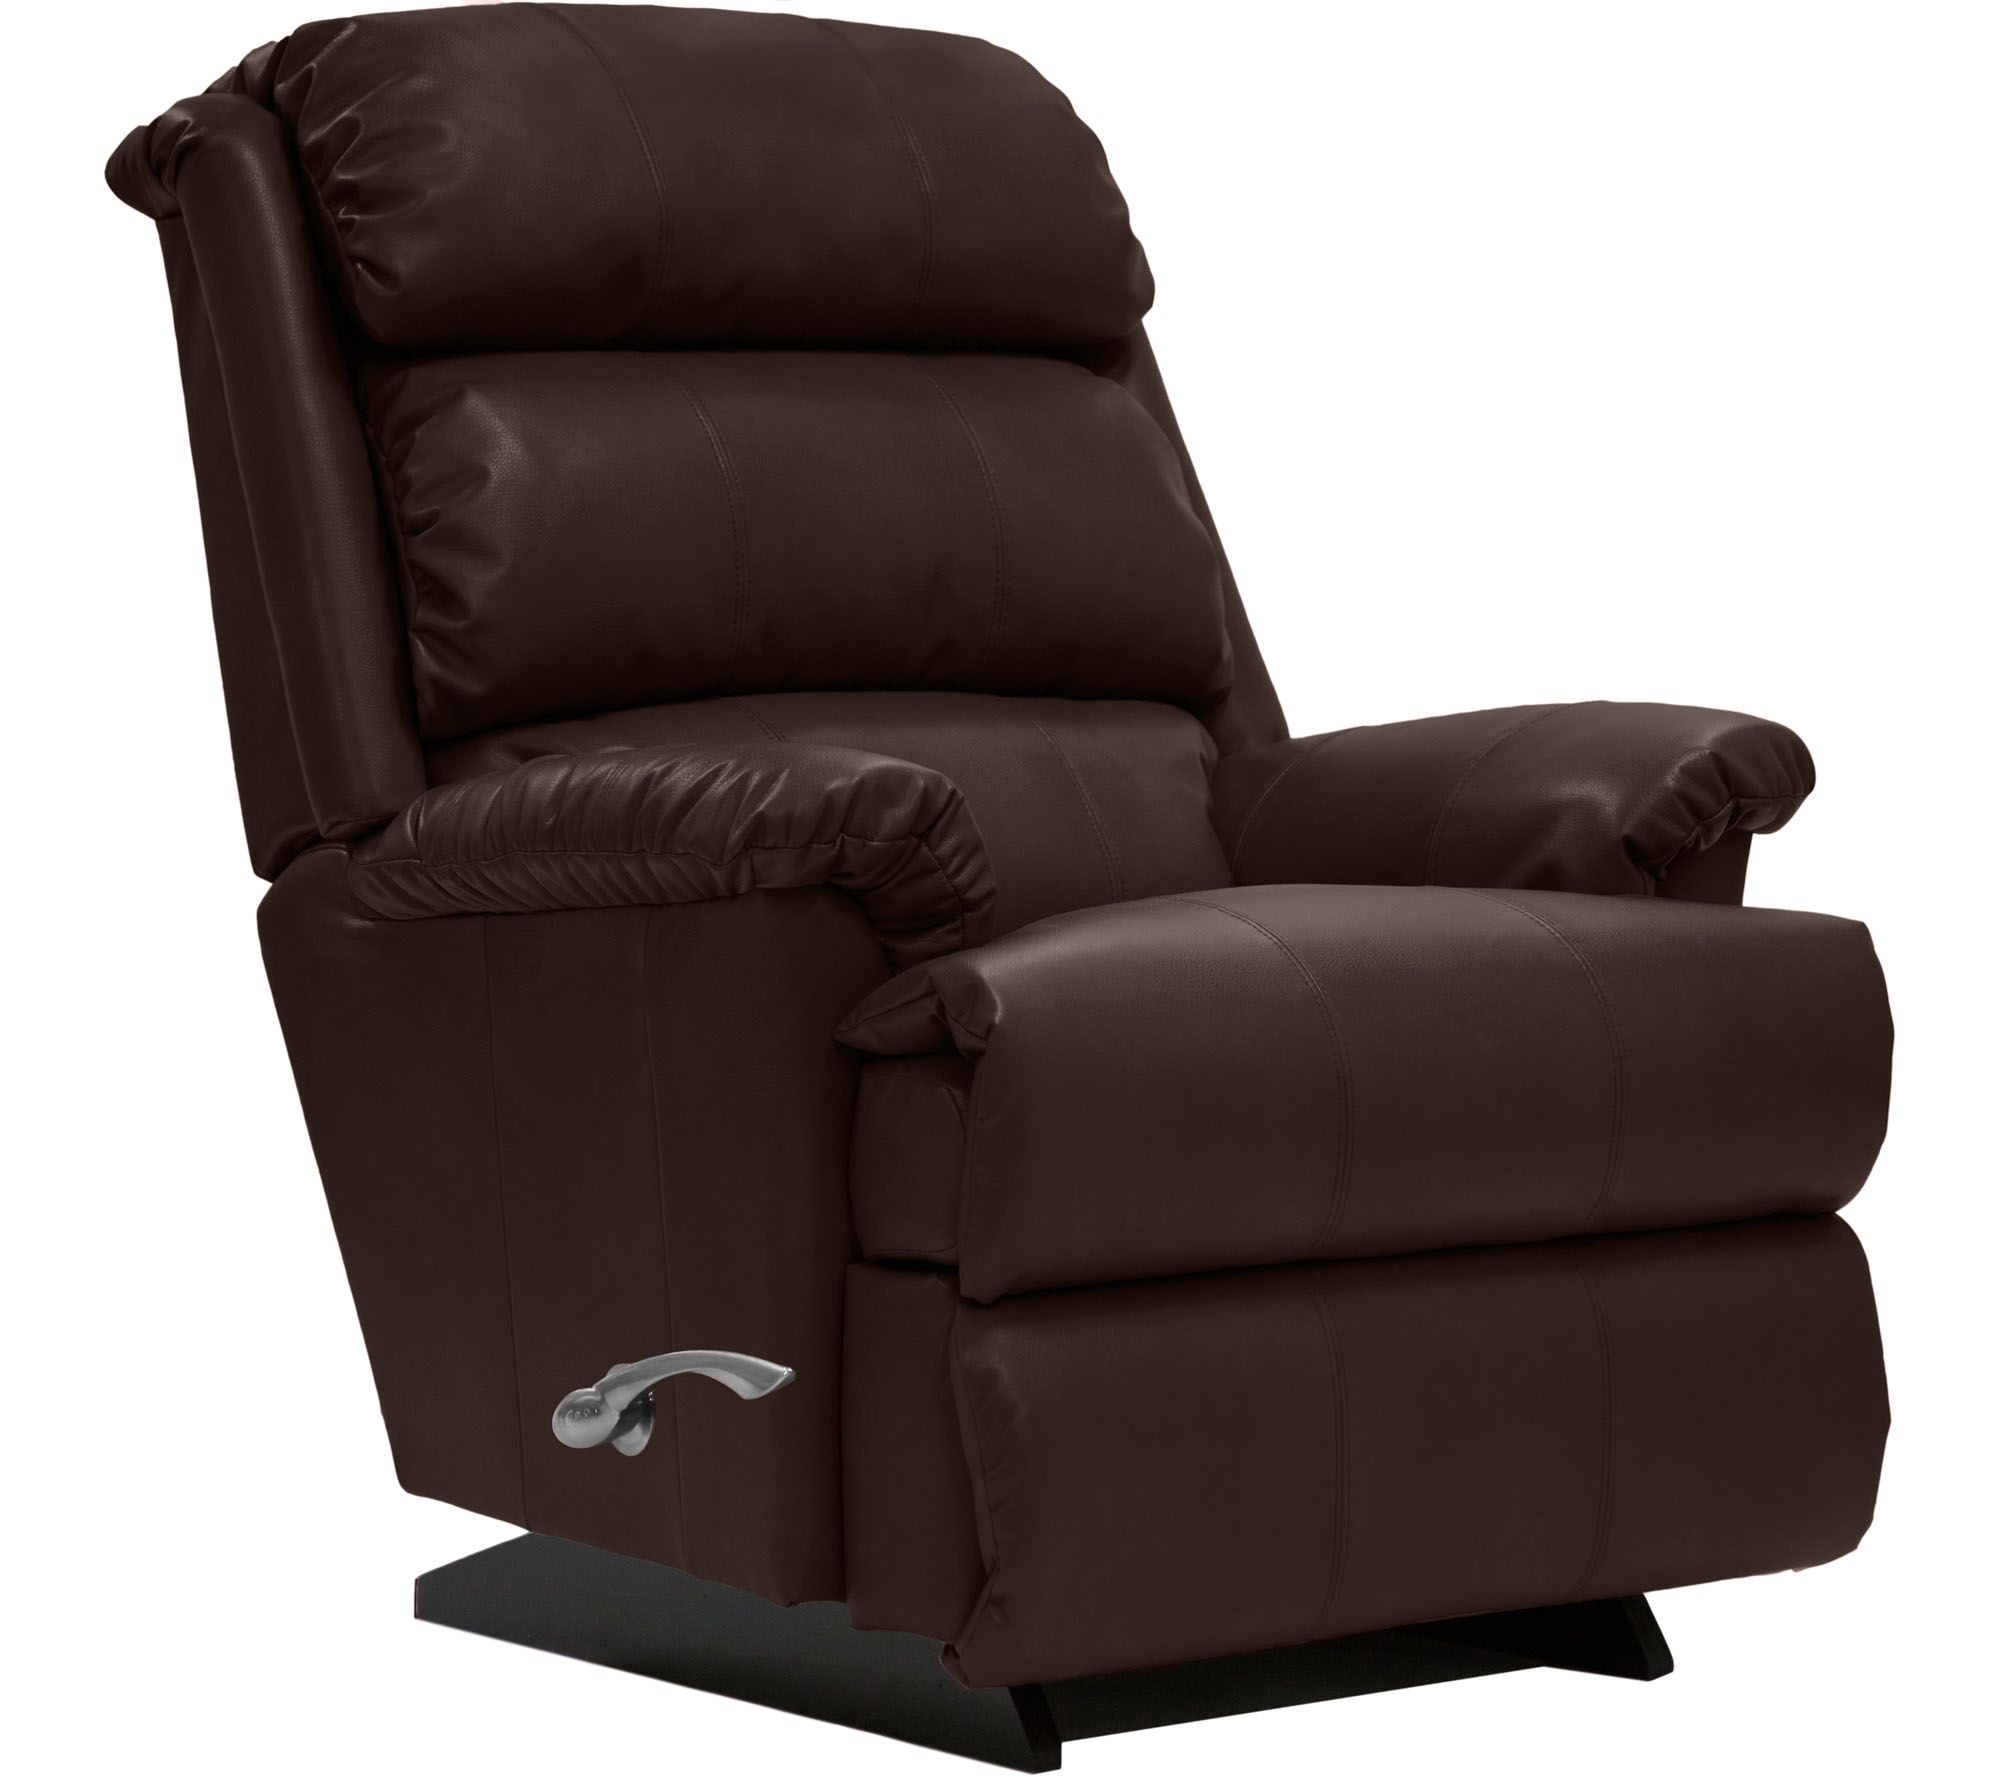 la z boy big man chair massage for therapist astor rocka recliner with memory foam page 1